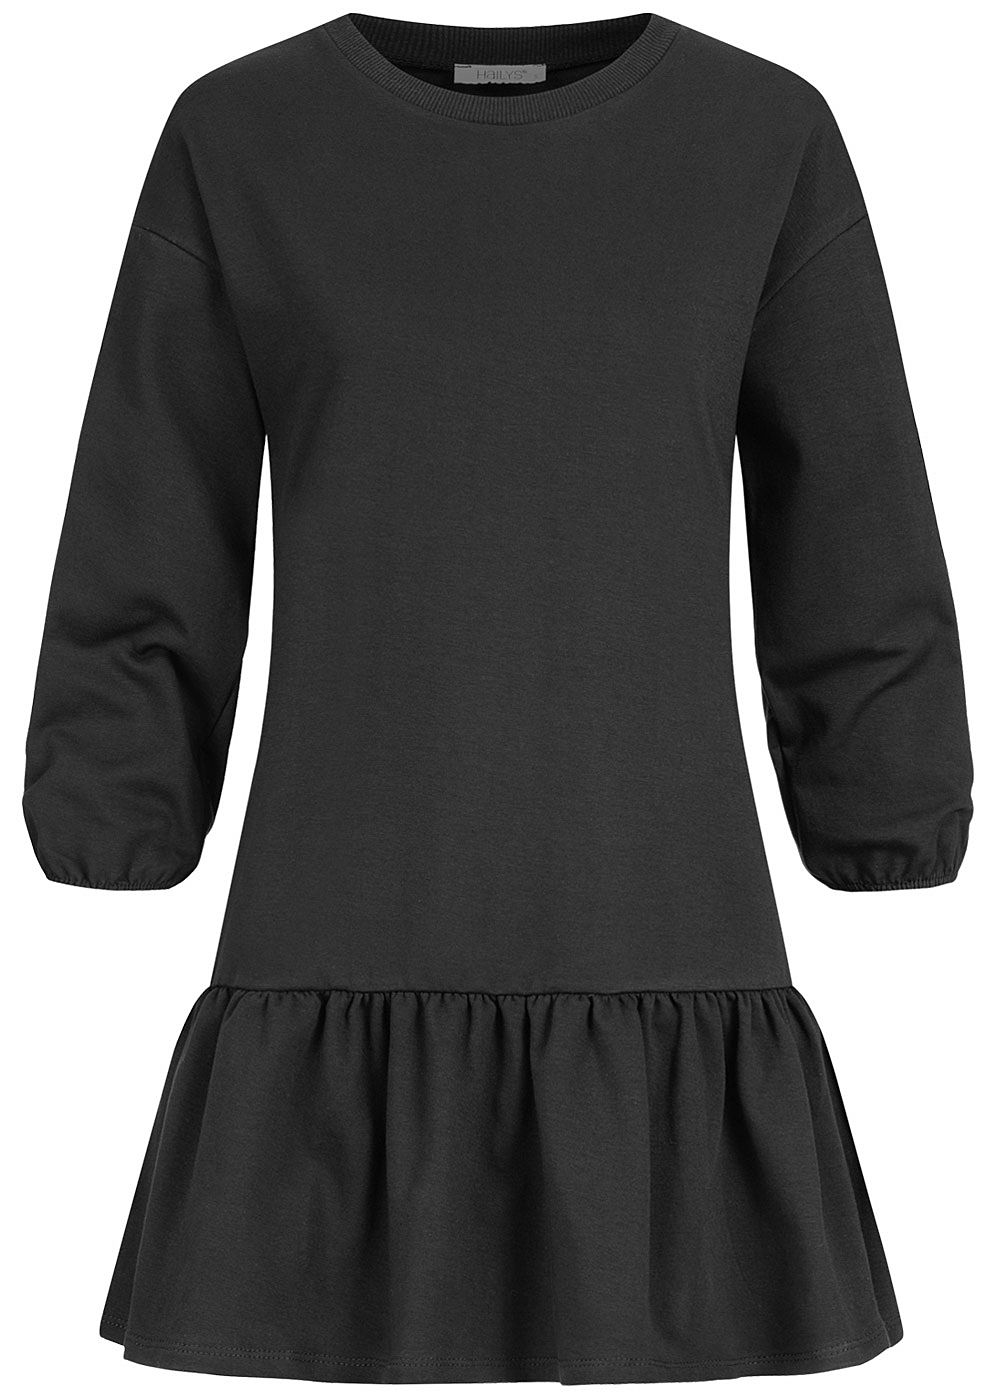 Hailys Damen 3/4 Arm Sweat Kleid Raffung am Saum schwarz - Art.-Nr.: 20084065